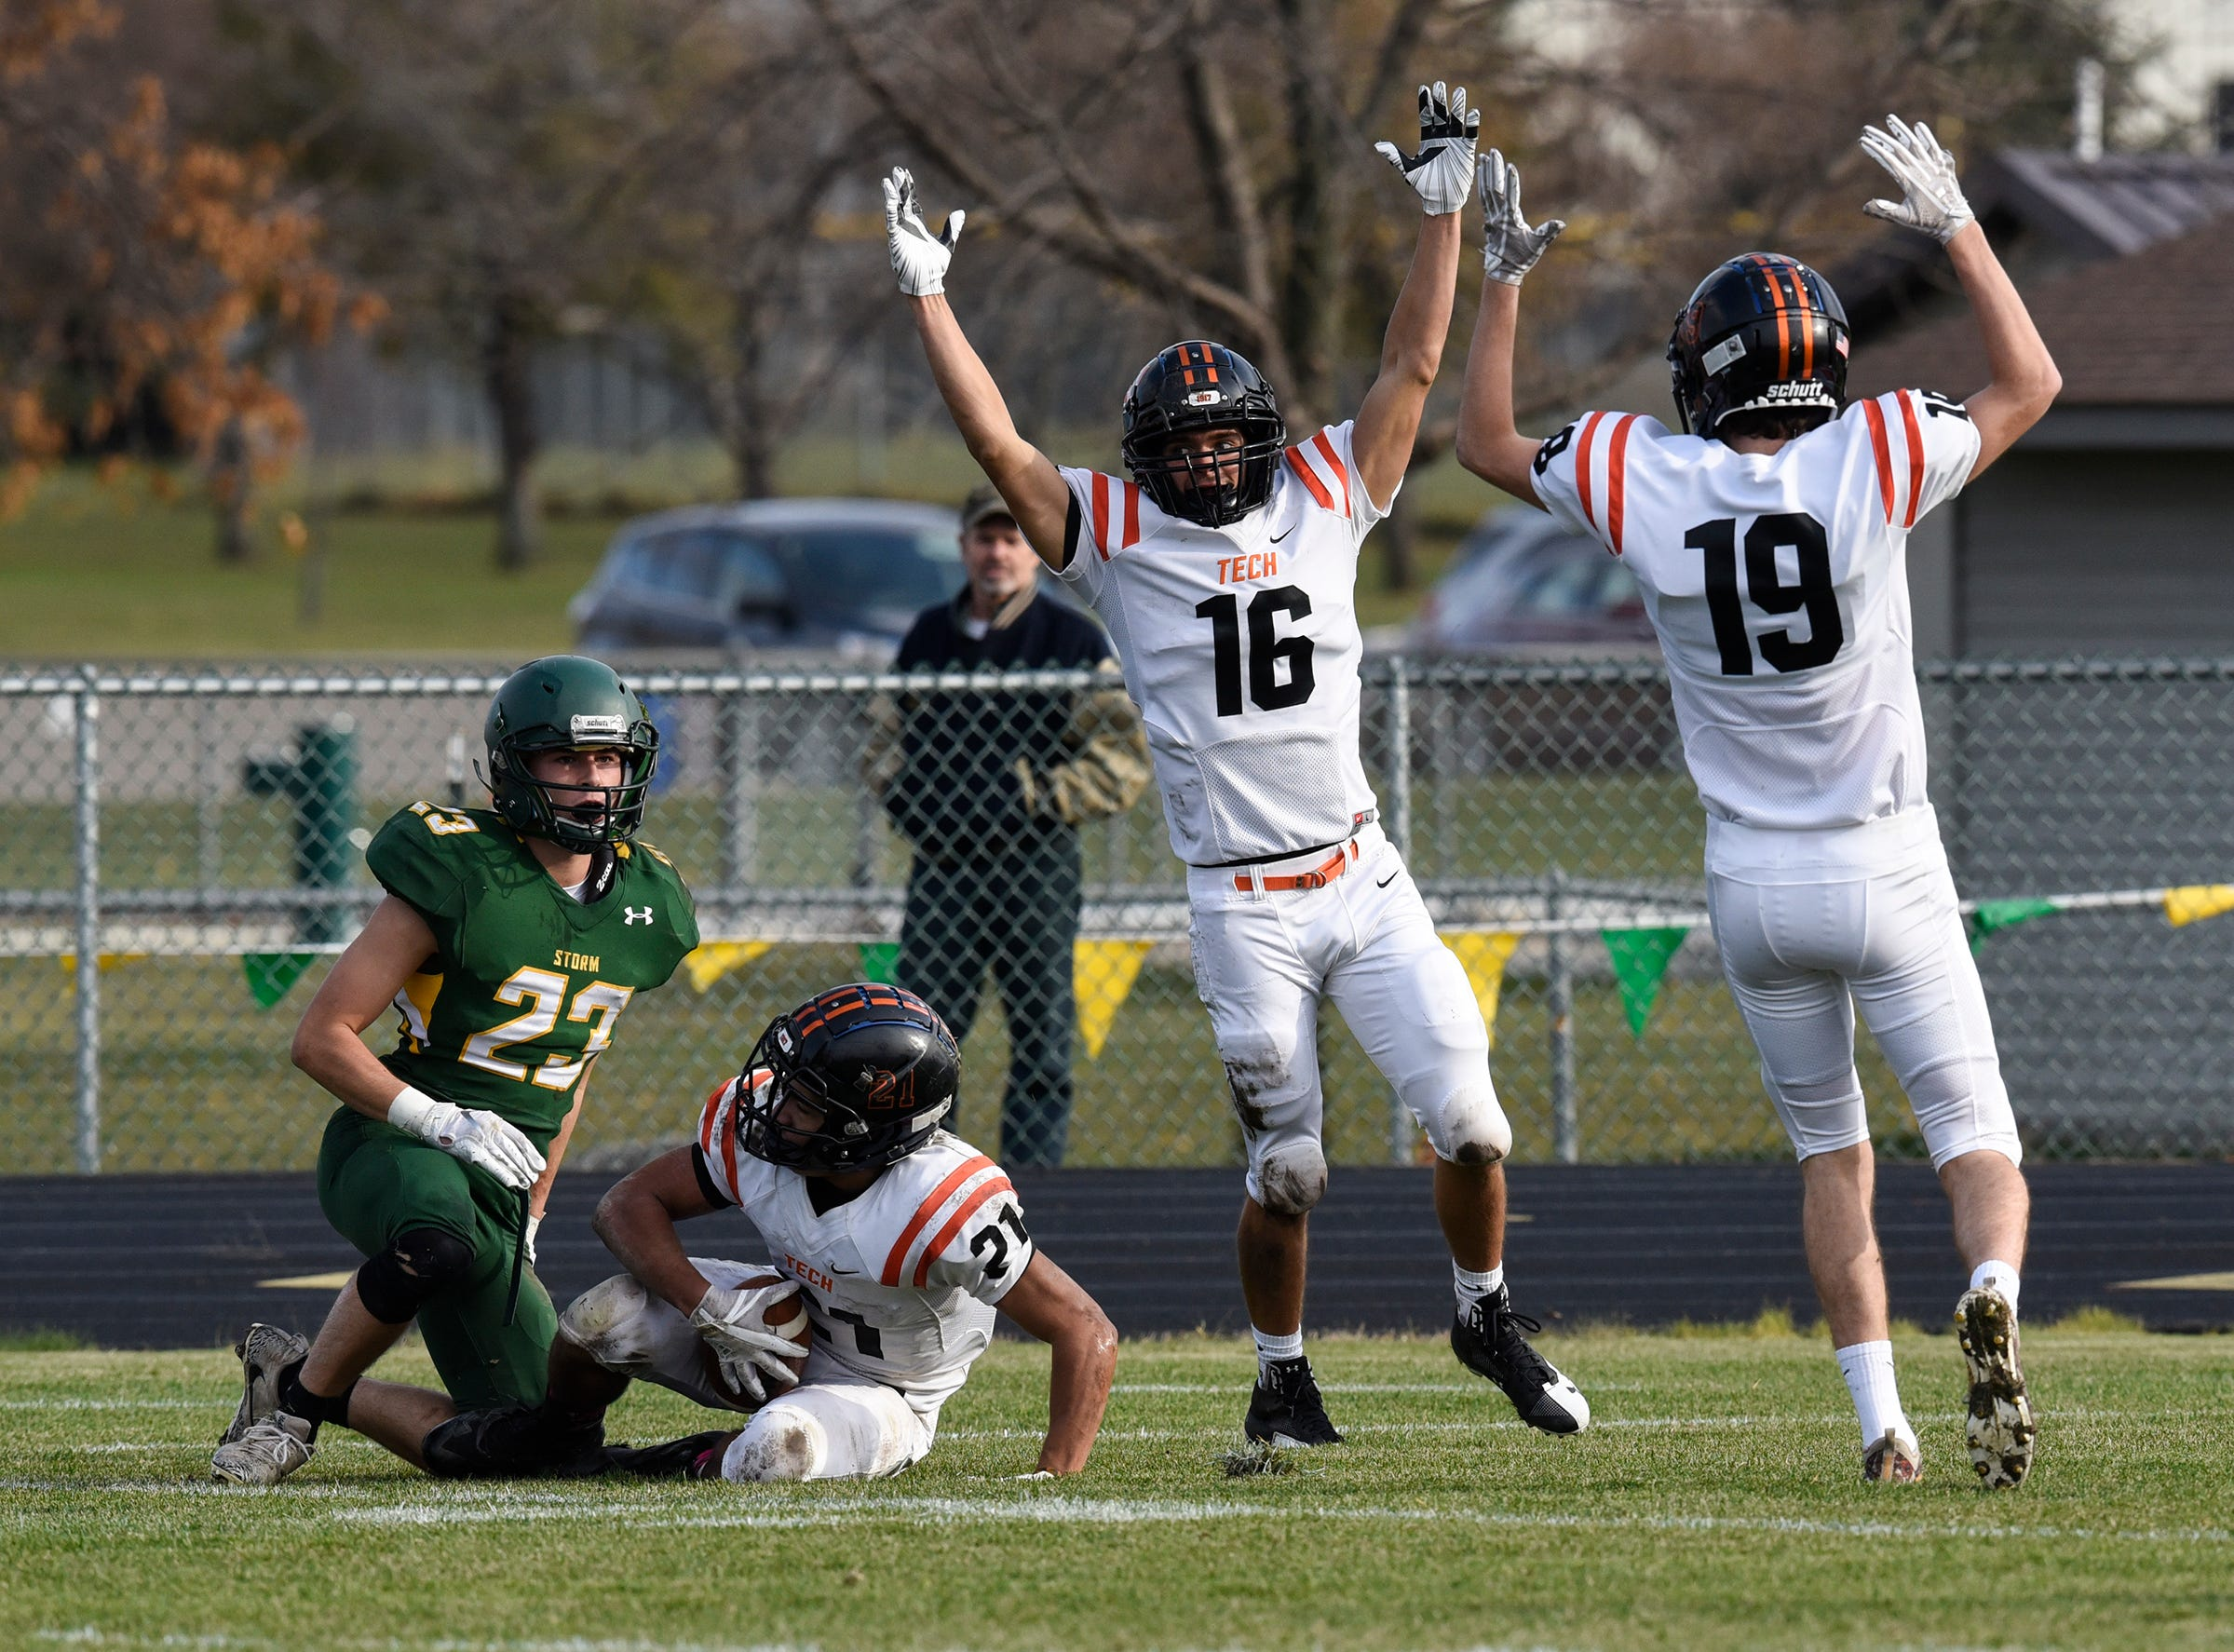 Tech players celebrate a first-half touchdown Saturday, Oct. 27, during the Section 6-5A semifinal game in Sauk Rapids.